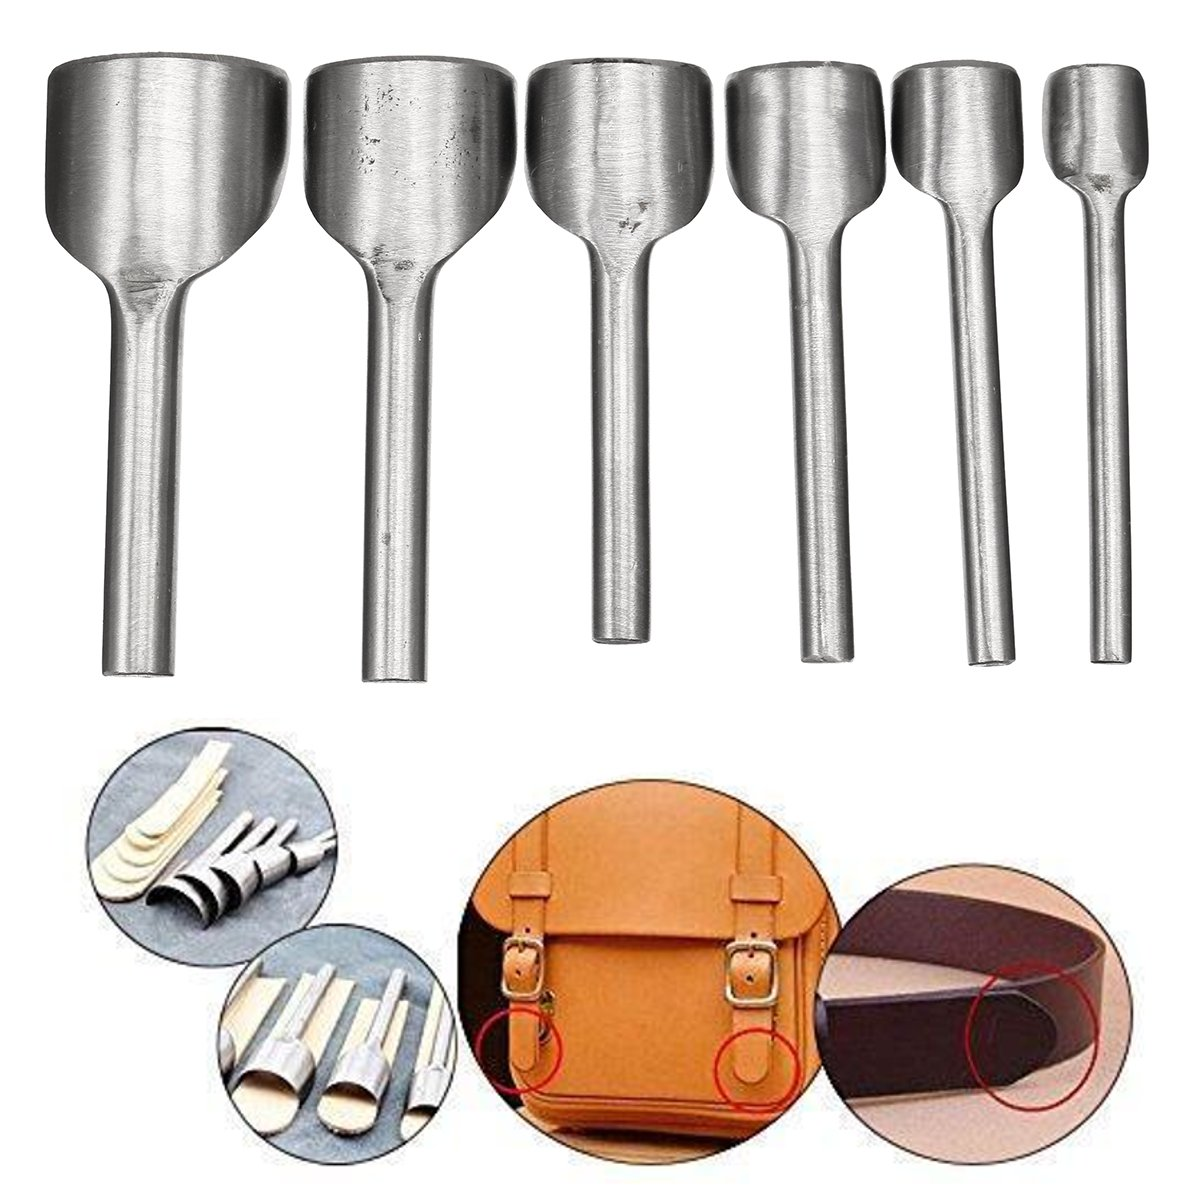 100mm High Carbon Steel 1/2 Semicircle Leather Craft Punch Cutter Tools Belt Wallet Punch Tool for DIY Handicraft Leather Craft|Hand Tool Sets| |  - title=